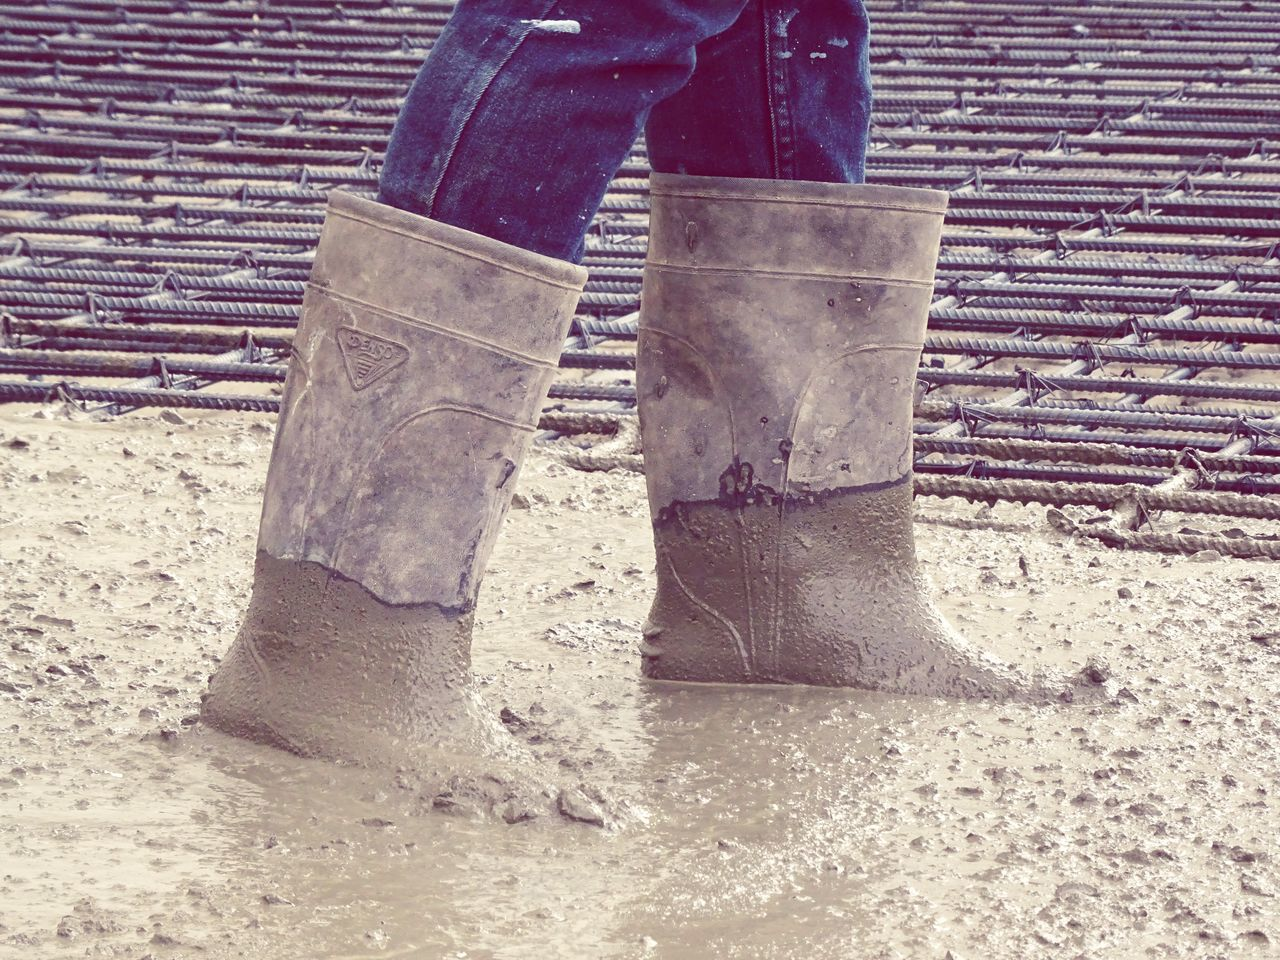 Cement Human Leg Base Concrete Low Section Construction Site Manual Worker Outdoors One Person Standing Real People Occupation Human Body Part Day Working Close-up Nature People Boots Protection Worker Concrete Floor